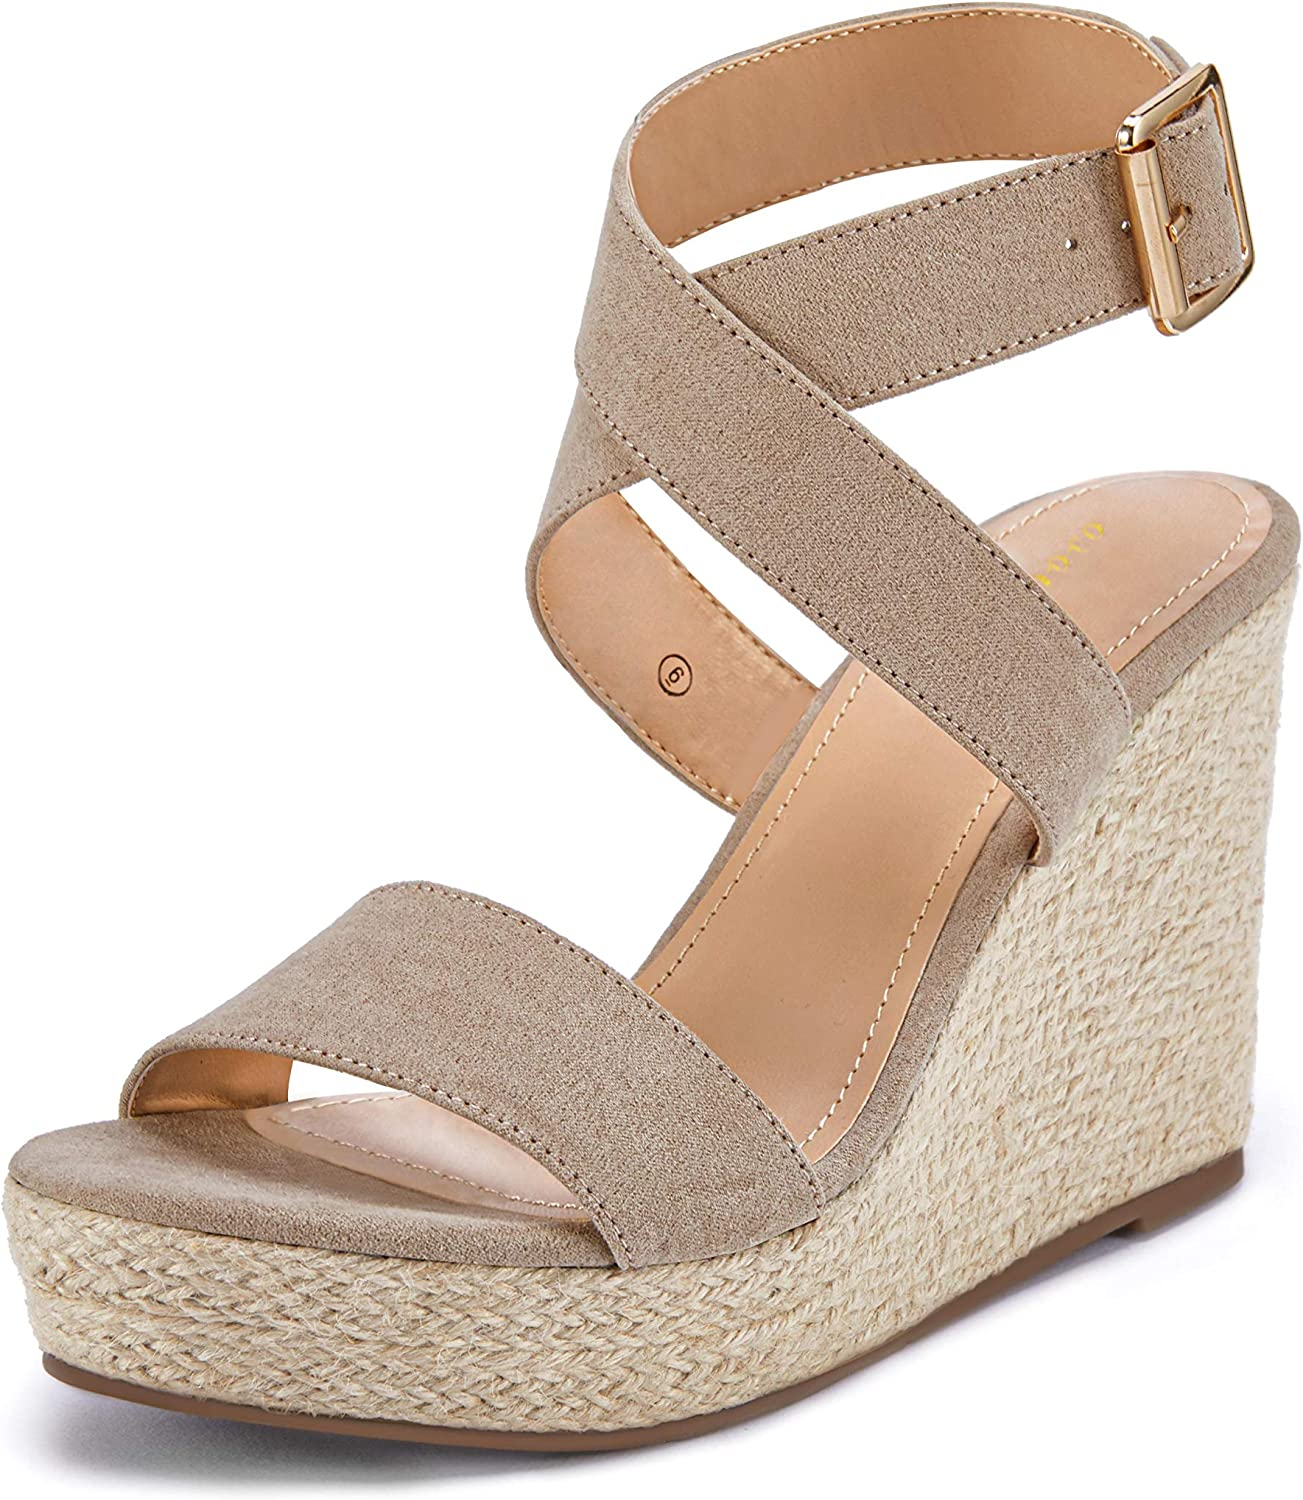 Coutgo Womens Wedge Espadrille Sandals Cross Phoenix Mall Buck Open safety Ankle Toe